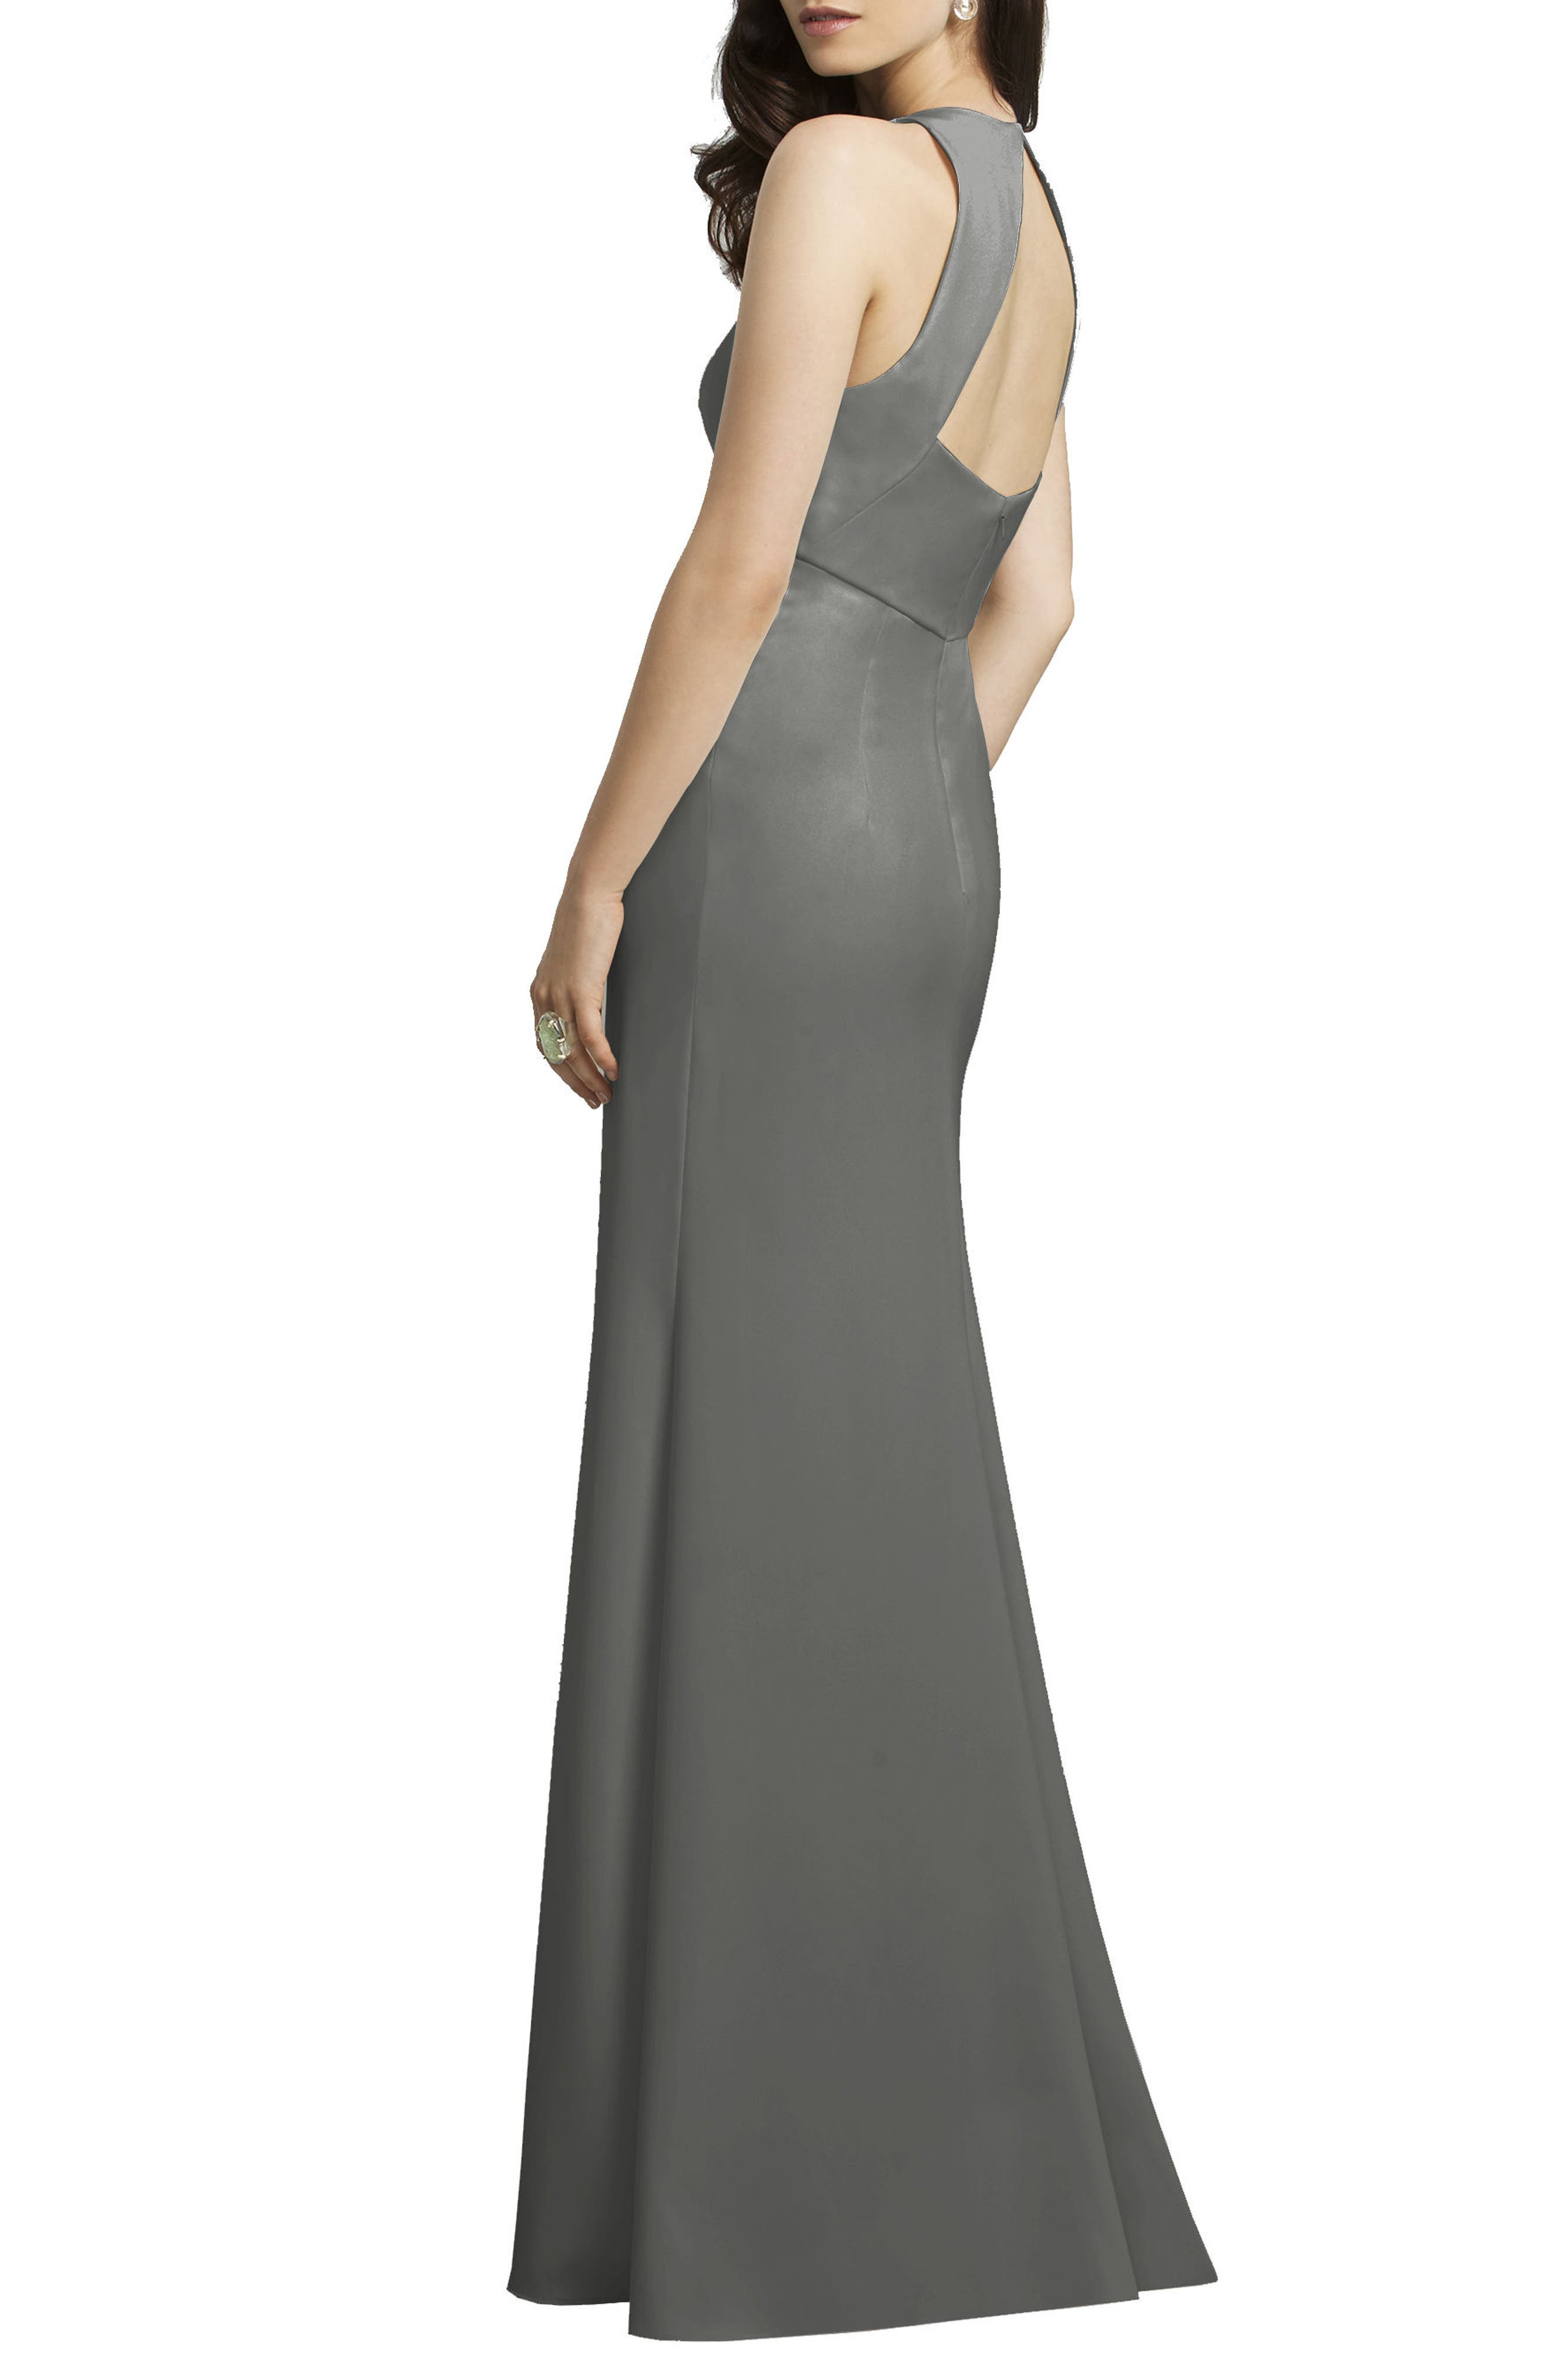 Crepe Gown,                             Alternate thumbnail 2, color,                             Charcoal Grey